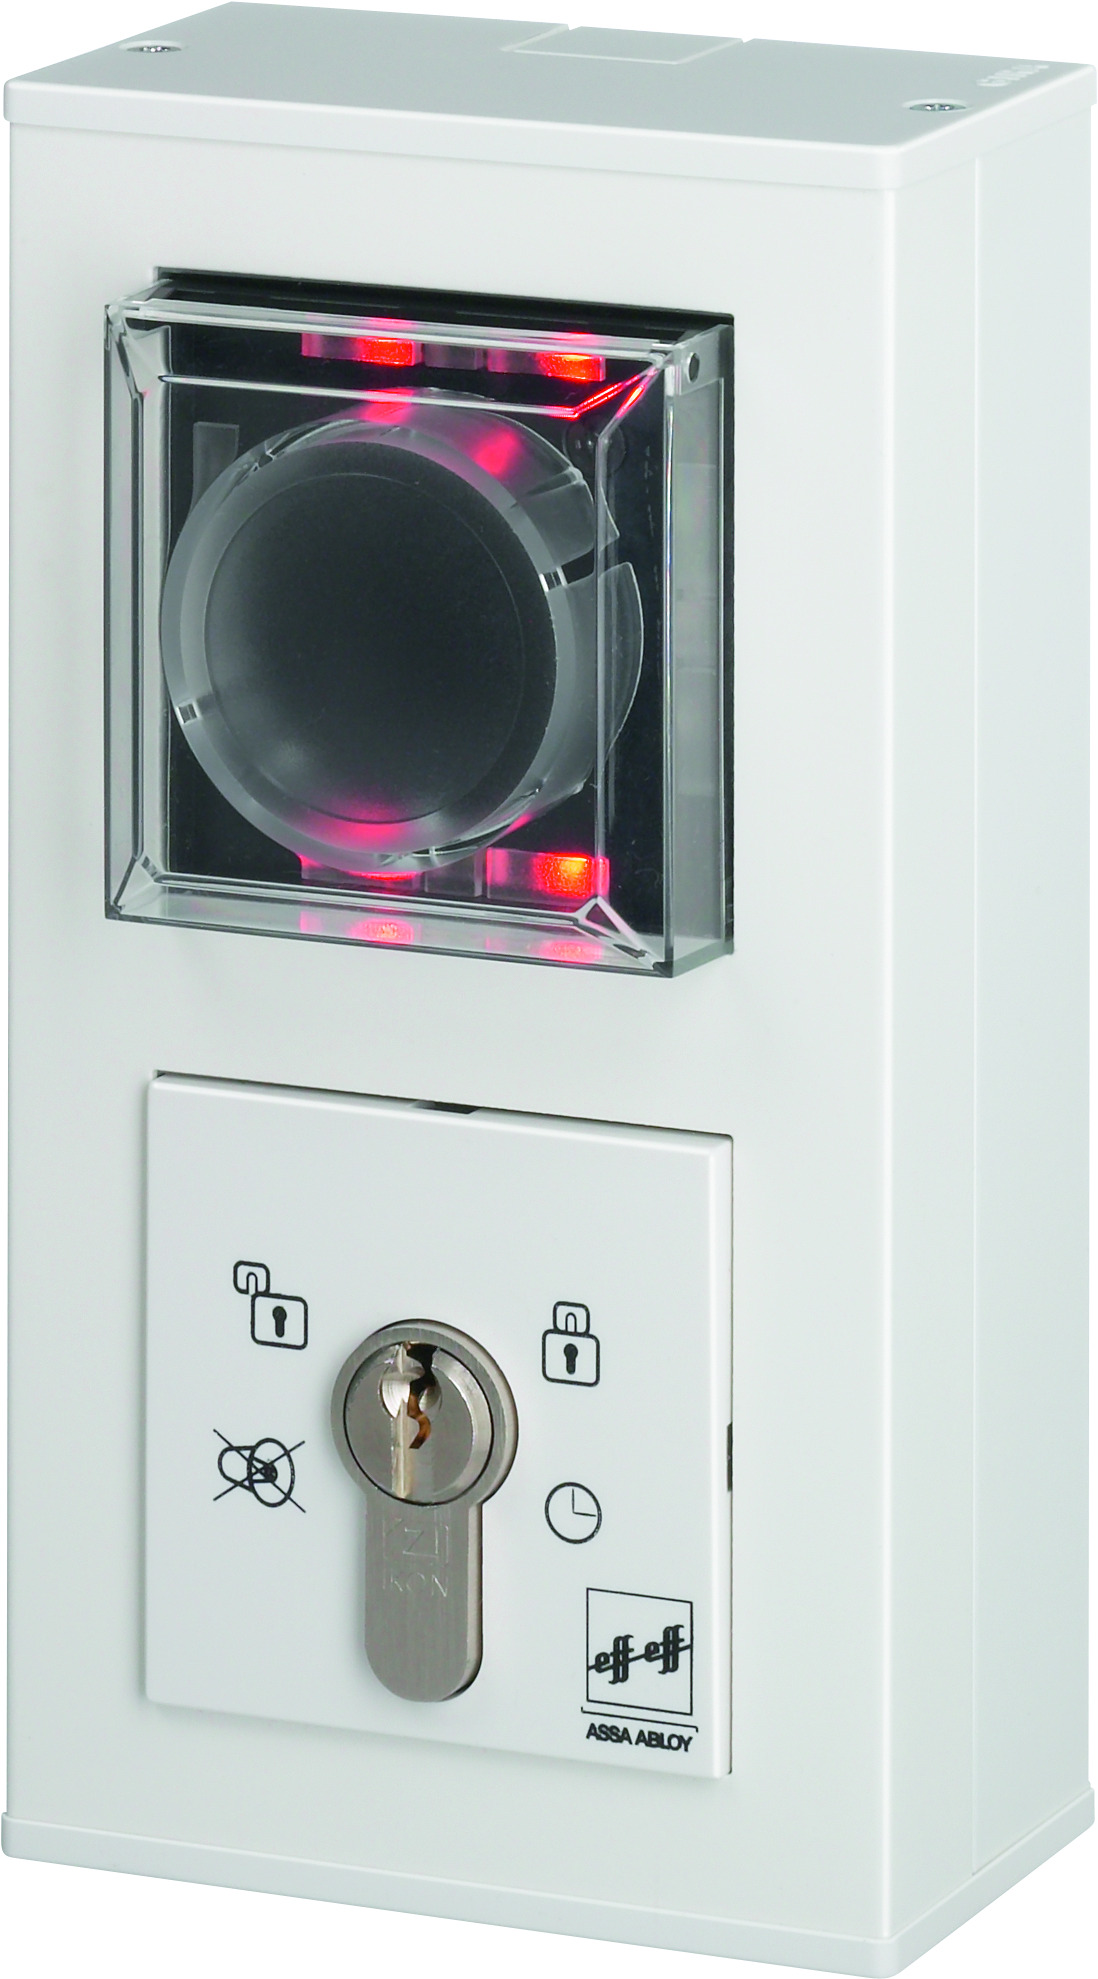 Surface-Mounted Door Monitoring Unit Model 1385T-11 & 1385T11-7 - Model 1385T 12/24 V DC with TS bus surface mount - Door ...